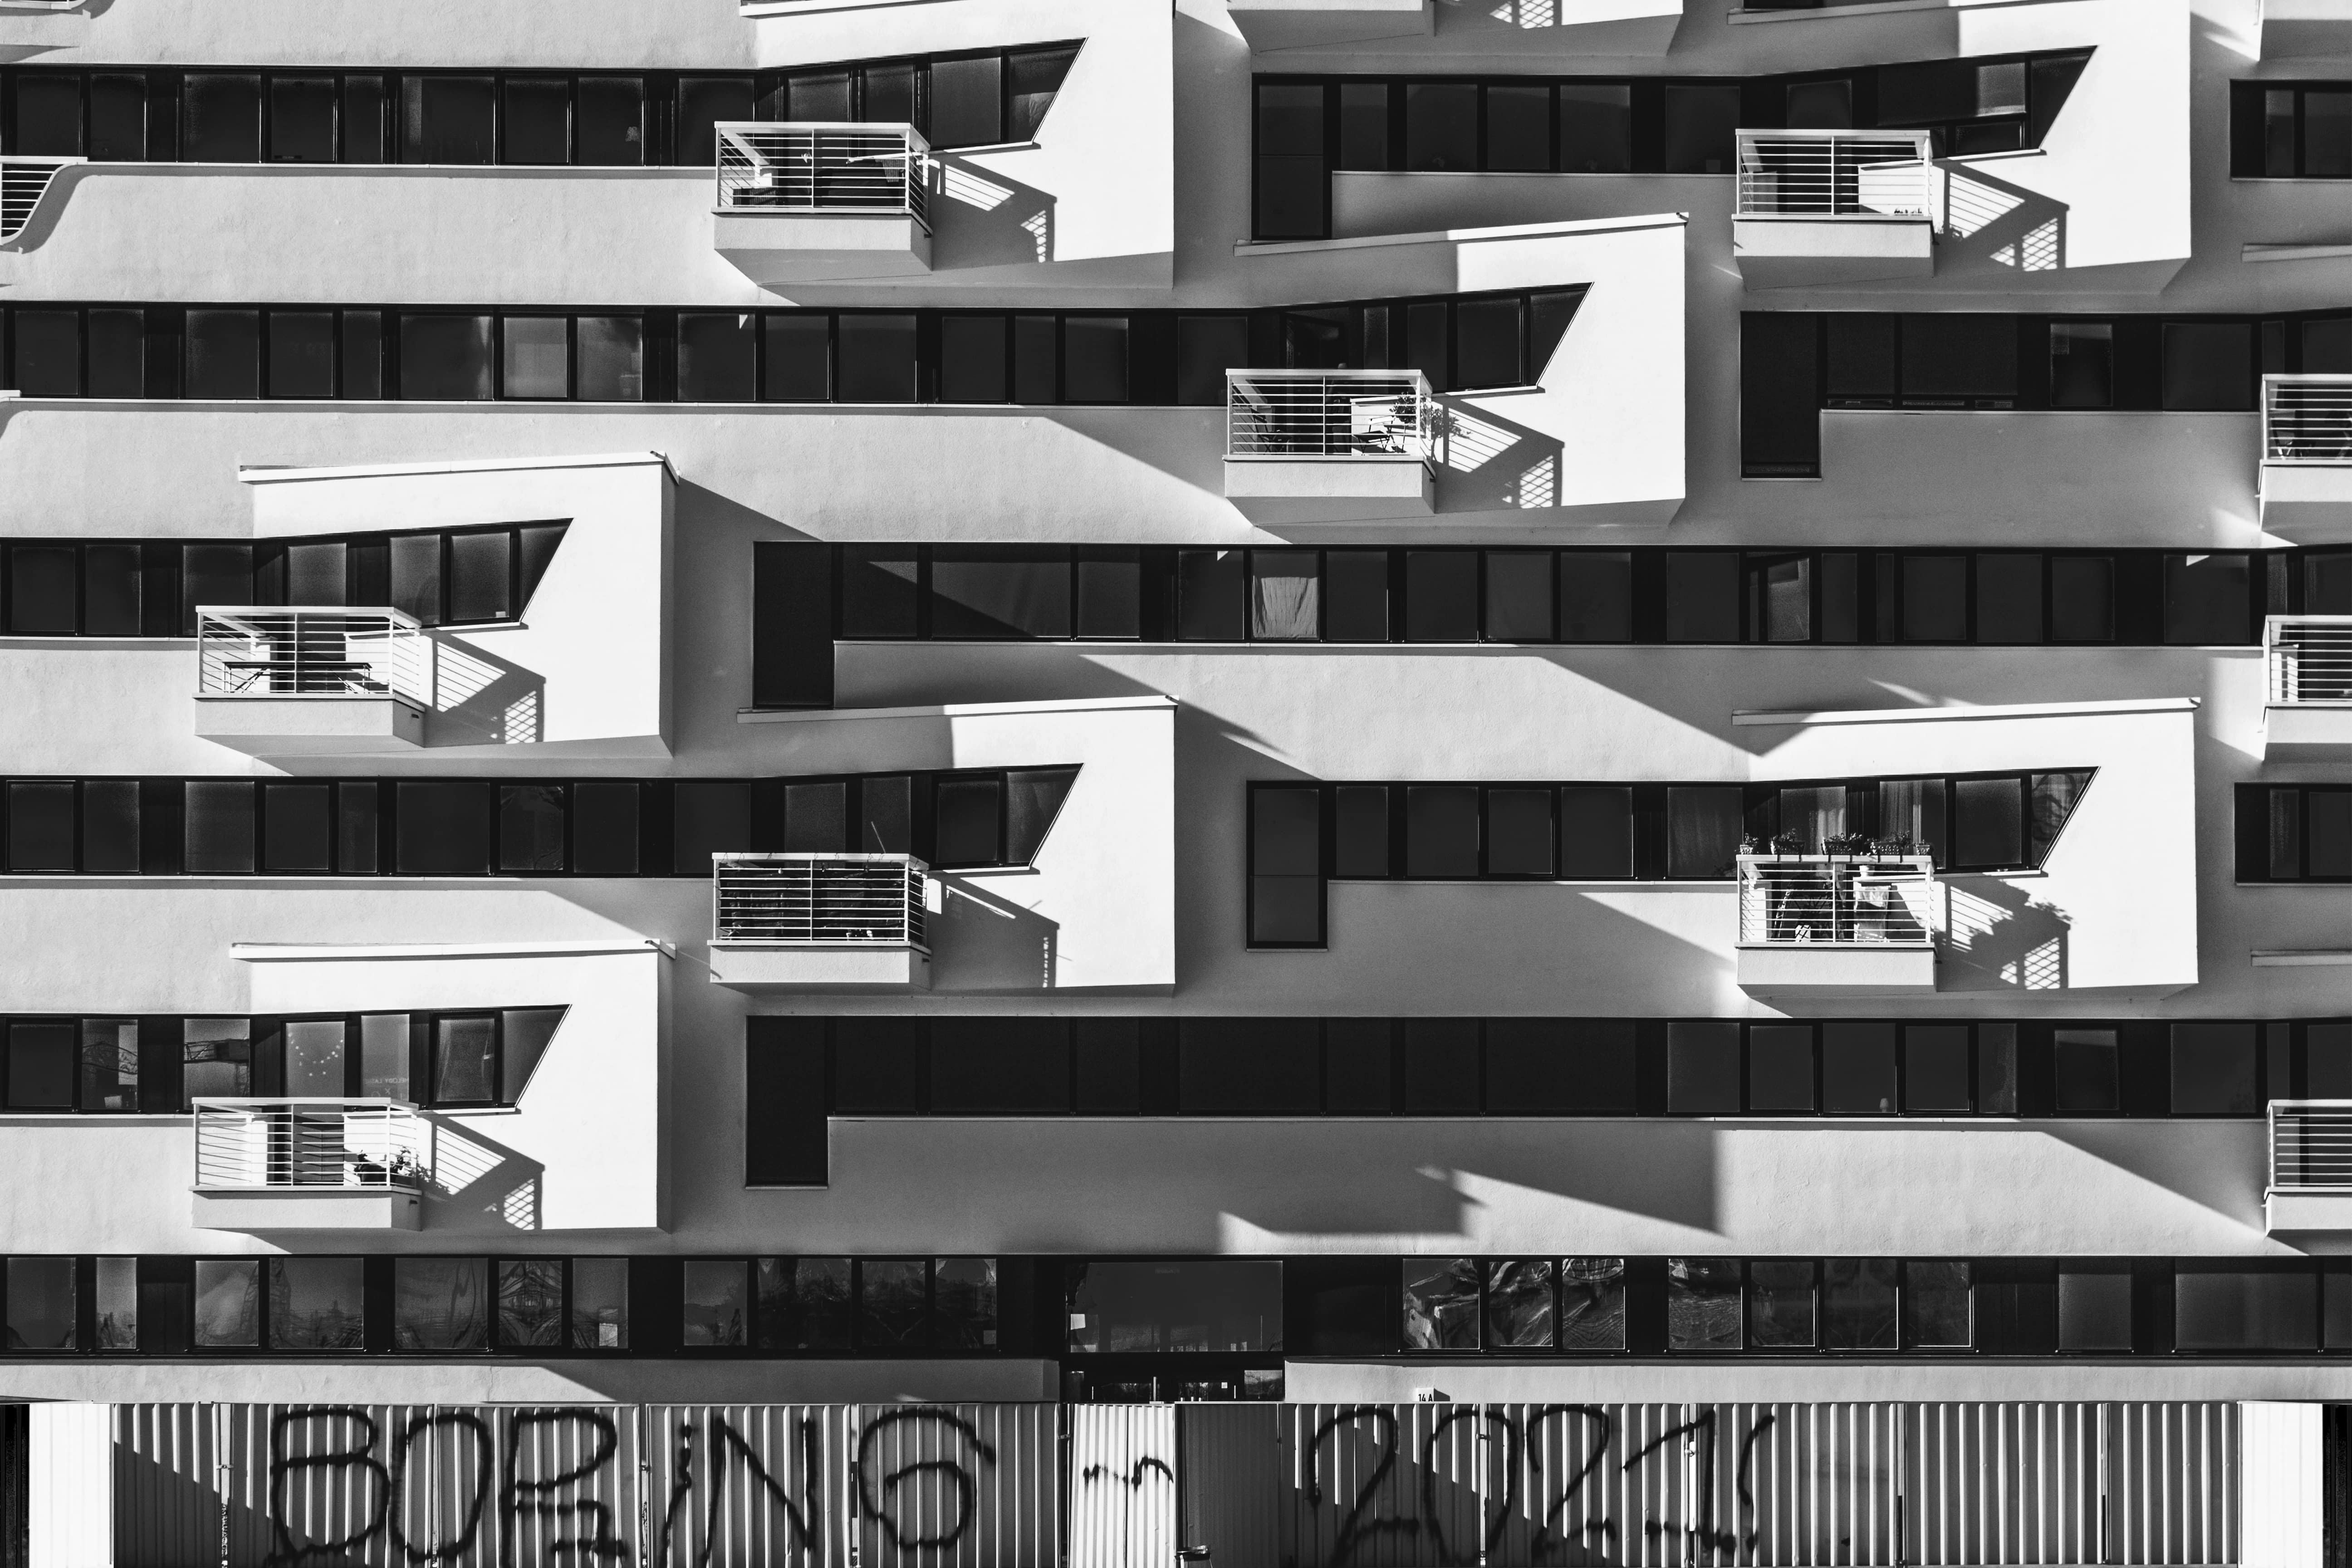 Arquitecture picture, black and white. Winning photo of the Beazy February Contest.